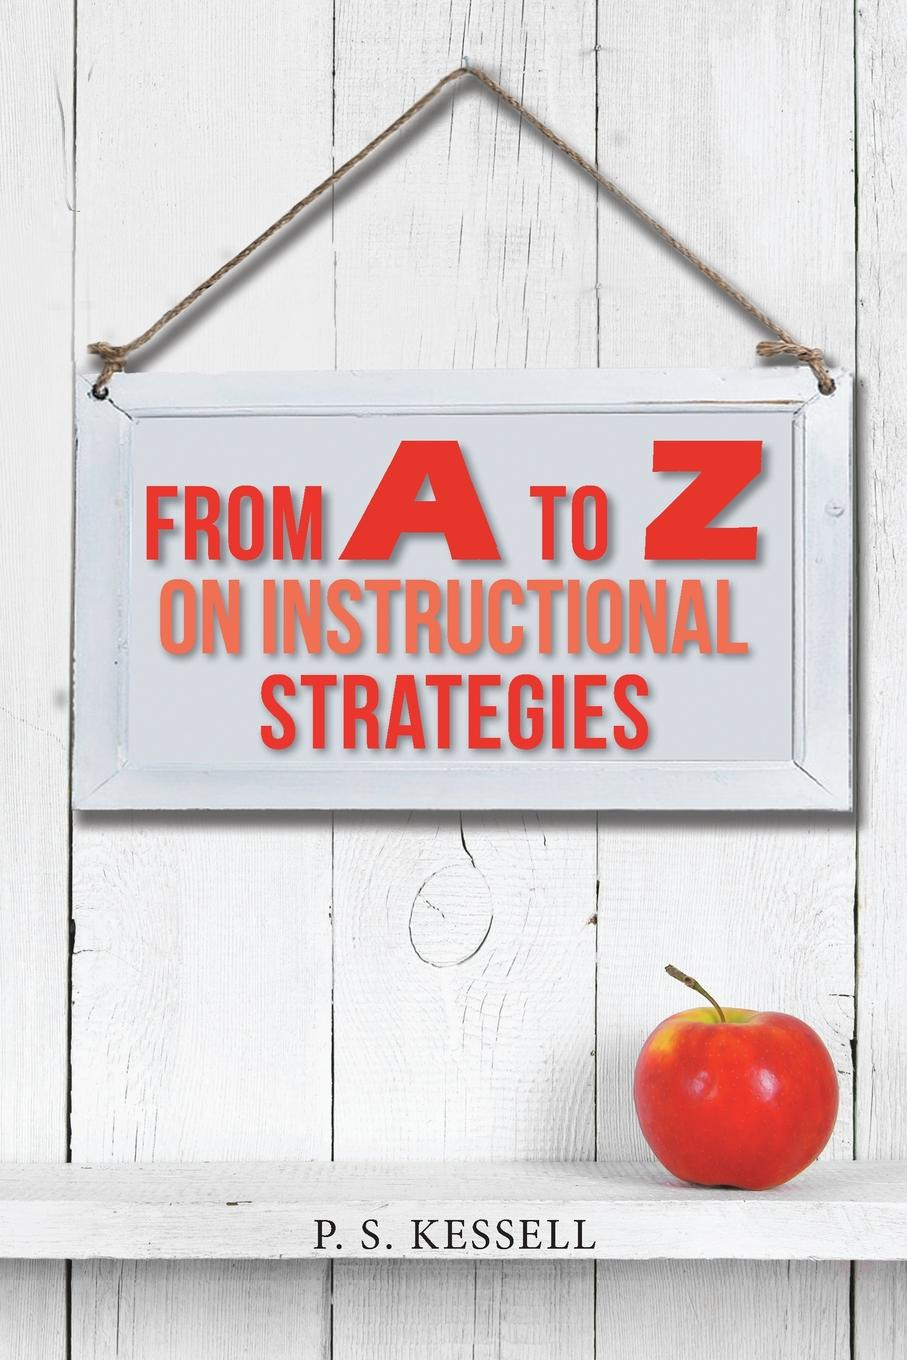 P. S. Kessell. From a to Z on Instructional Strategies